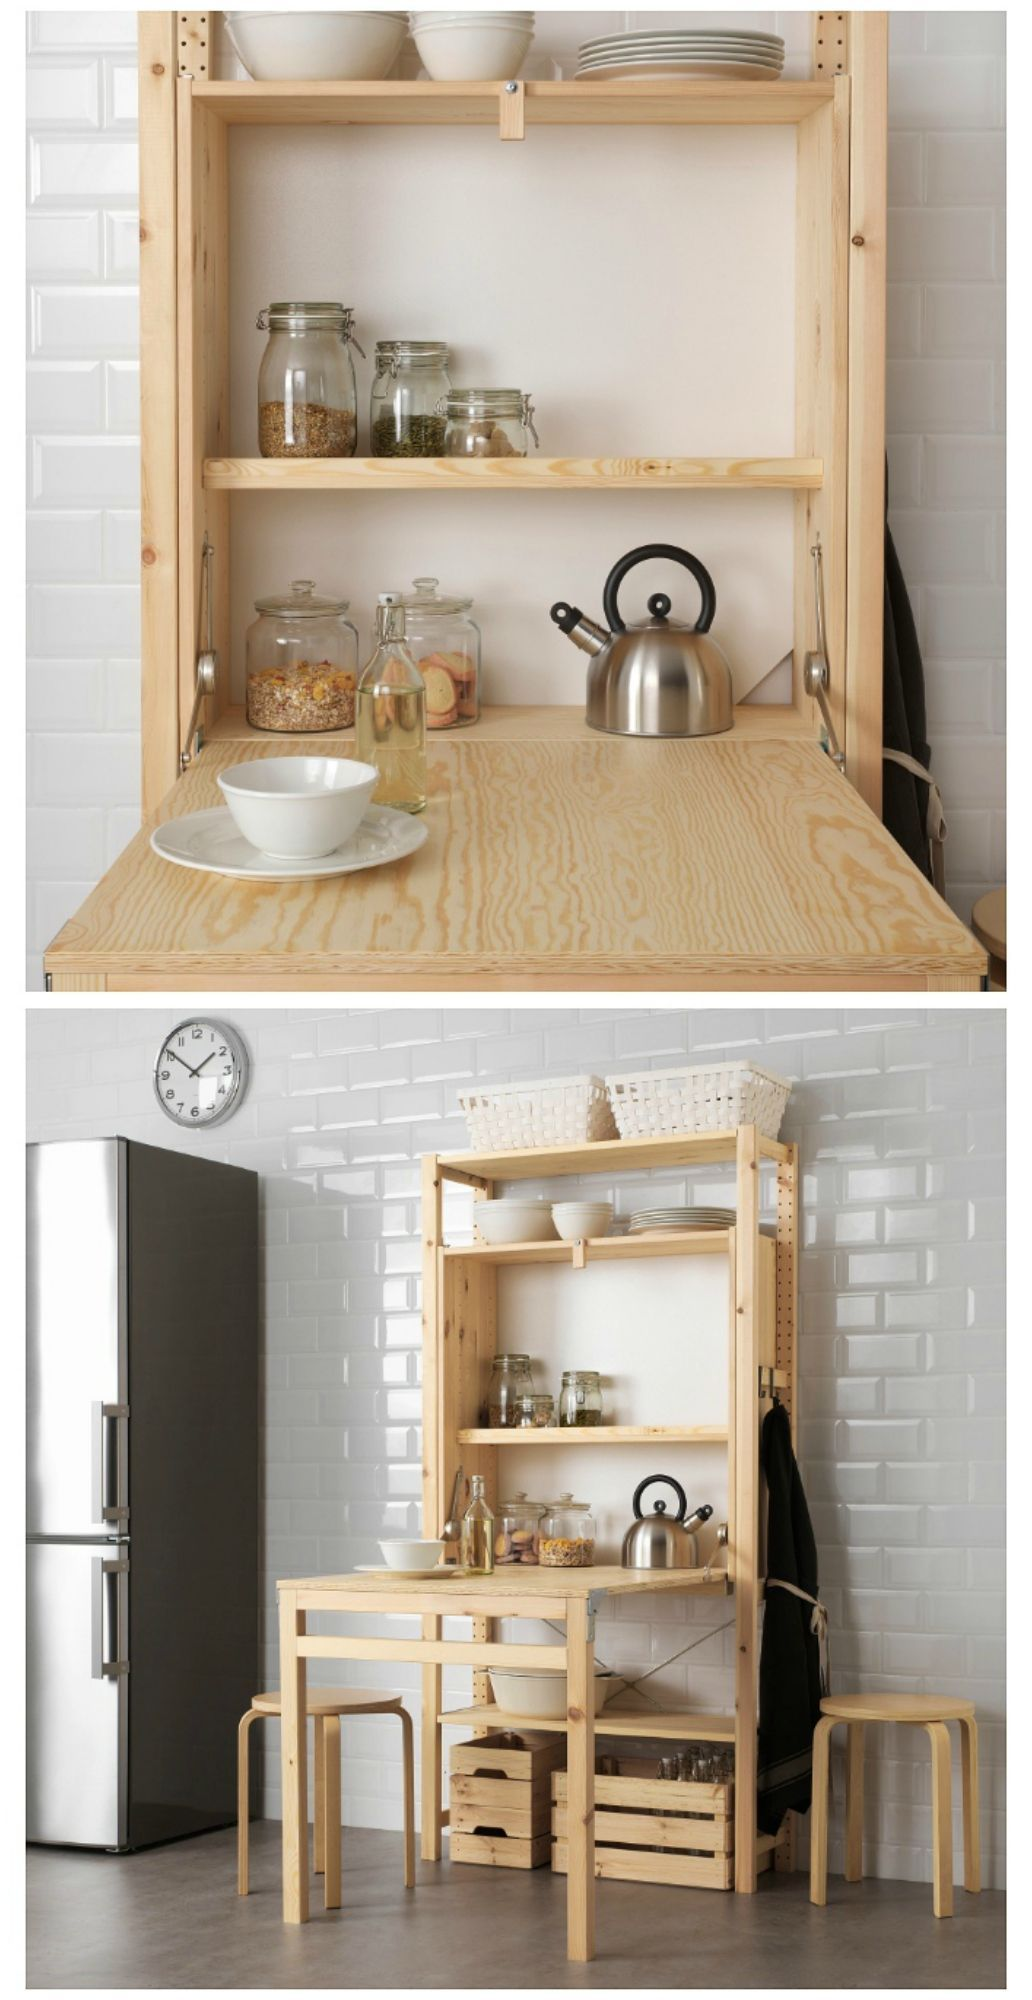 Ikea Launches Space Saving Shelving Unit With Foldable Table Ikea Small Spaces Space Saving Shelves Space Saving Kitchen Table